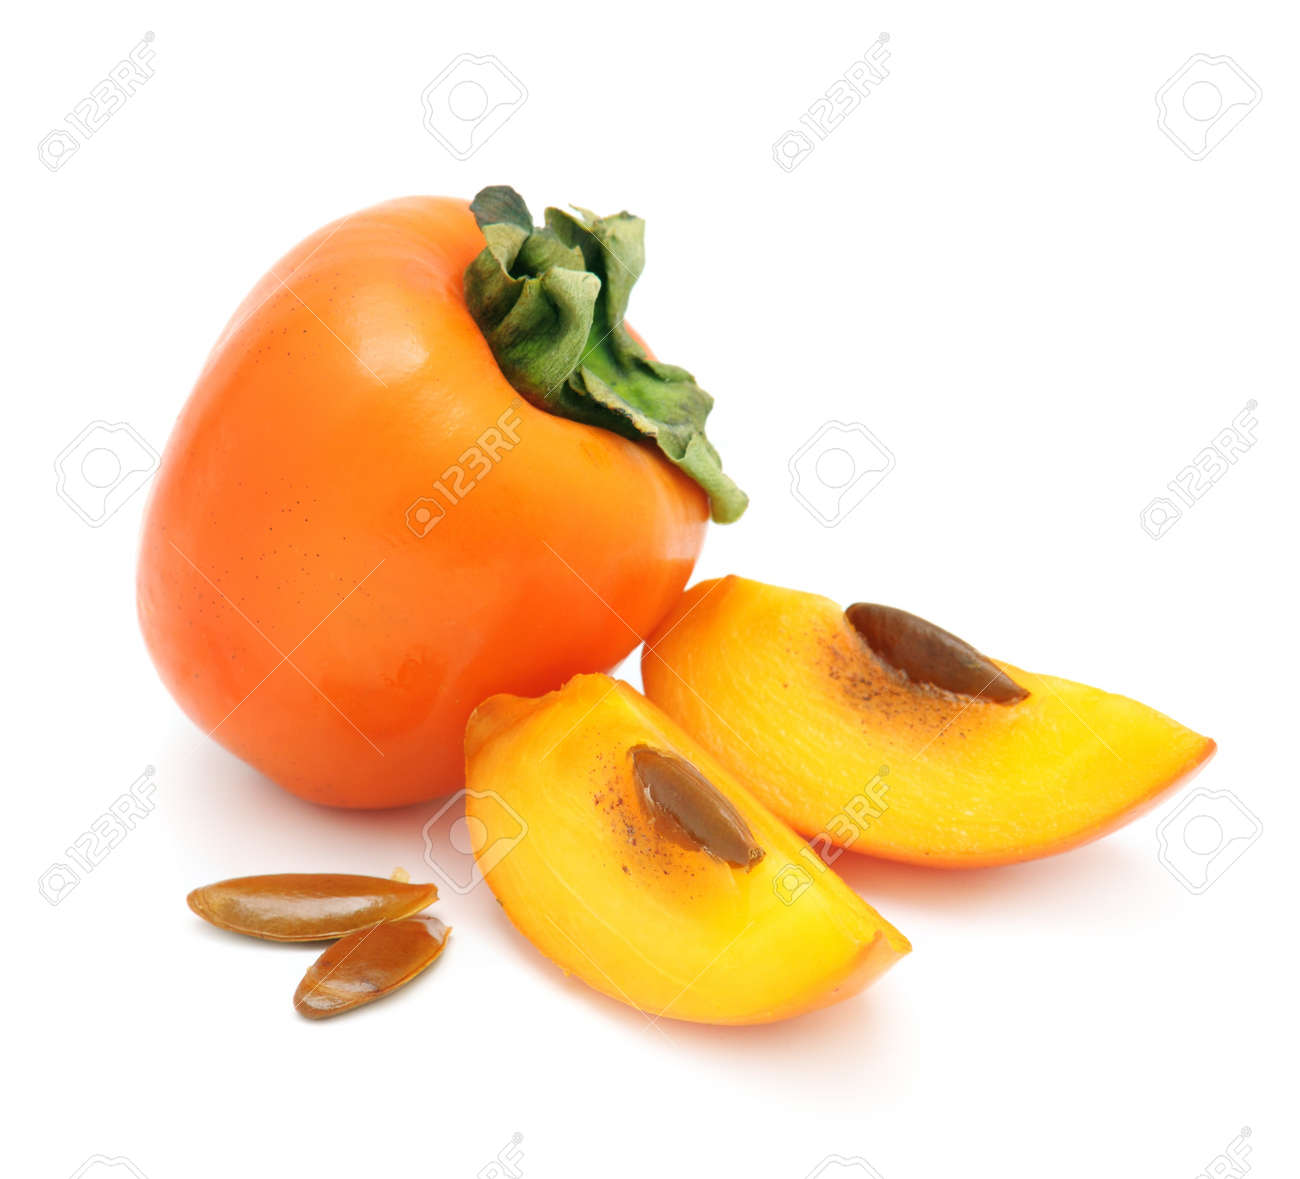 persimmon isolated on a white background - 12067665